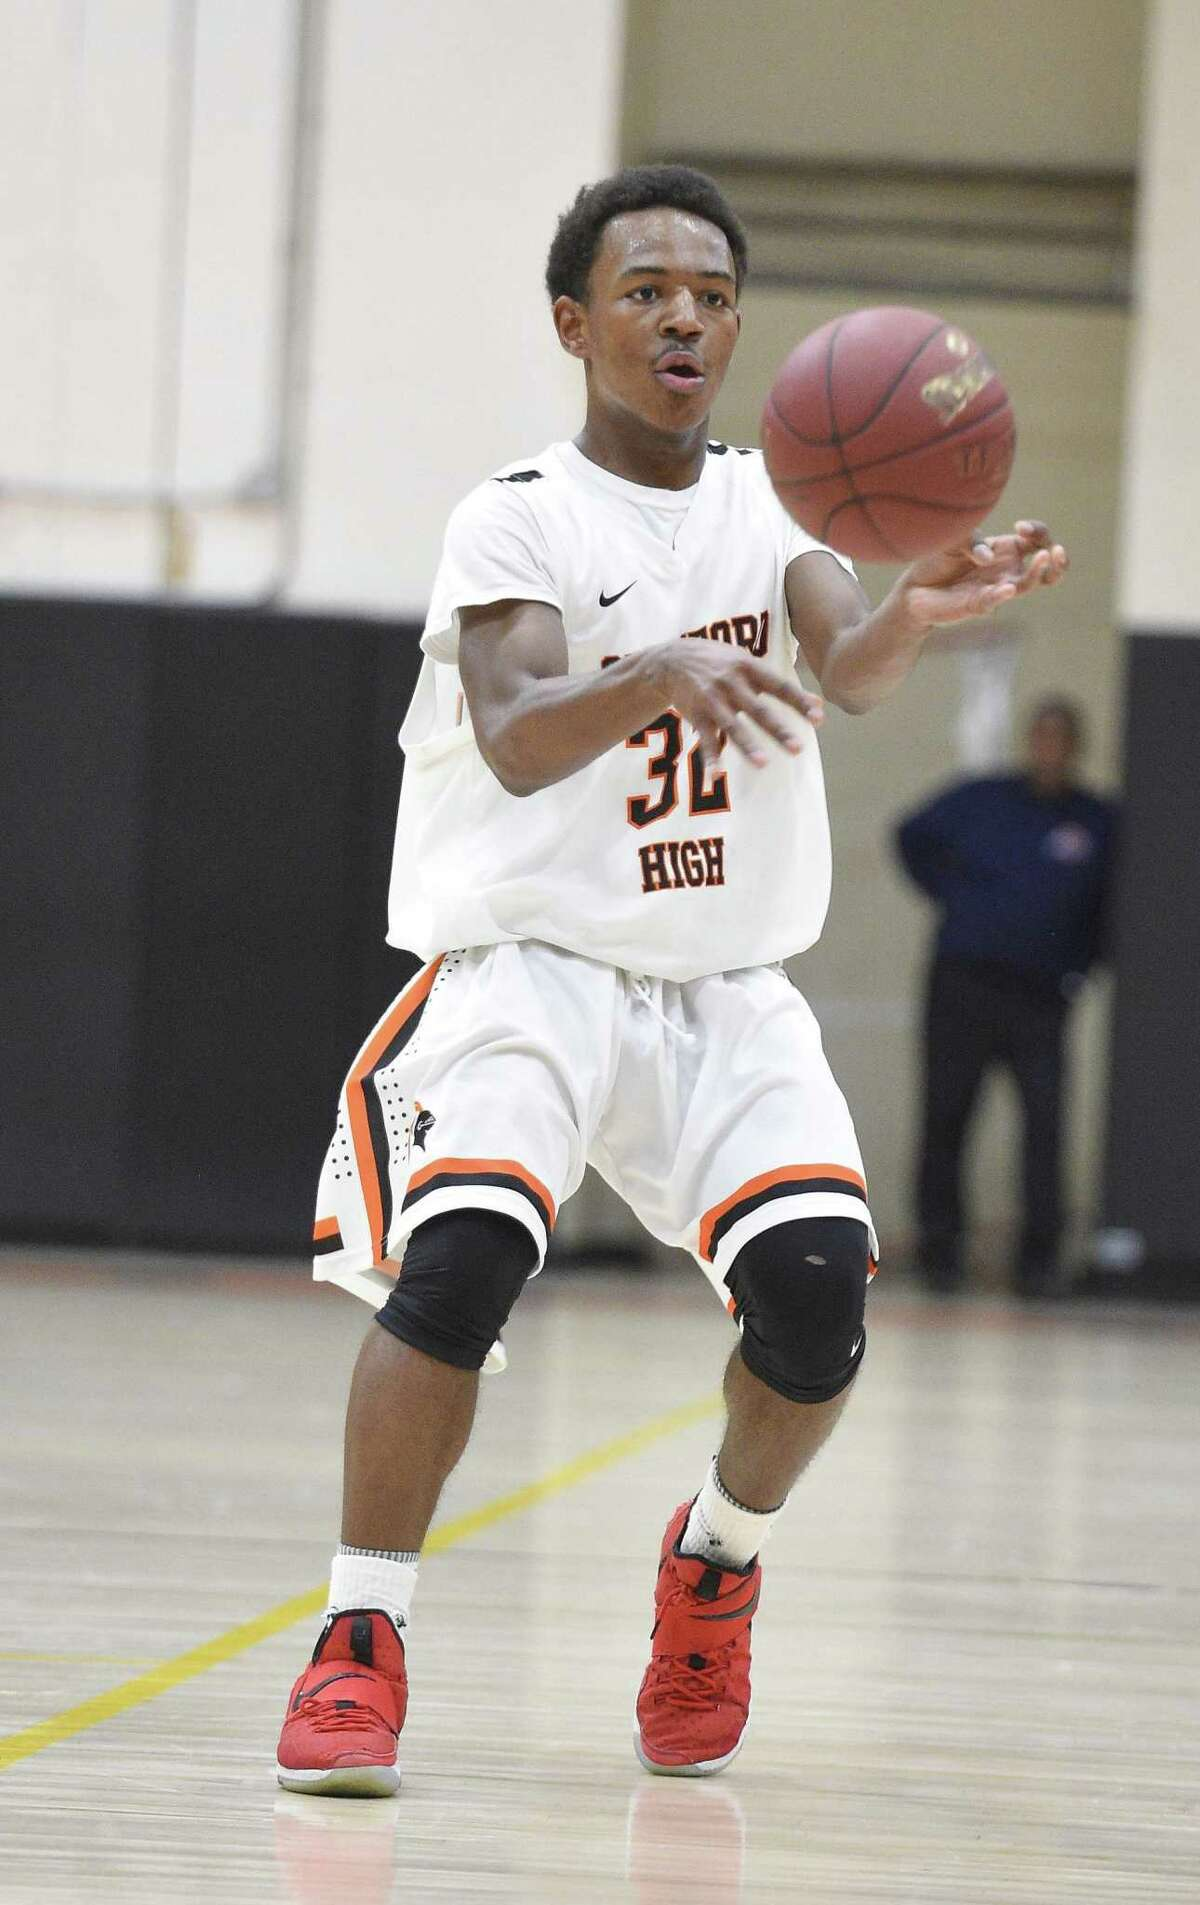 Jaden Bell Stamford defeats Naugatuck 65-57 in a First Round game of the CIAC Division II Boys Basketball Tournament at Stamford High School on Tuesday, March 6, 2018 in Stamford, Connecticut.